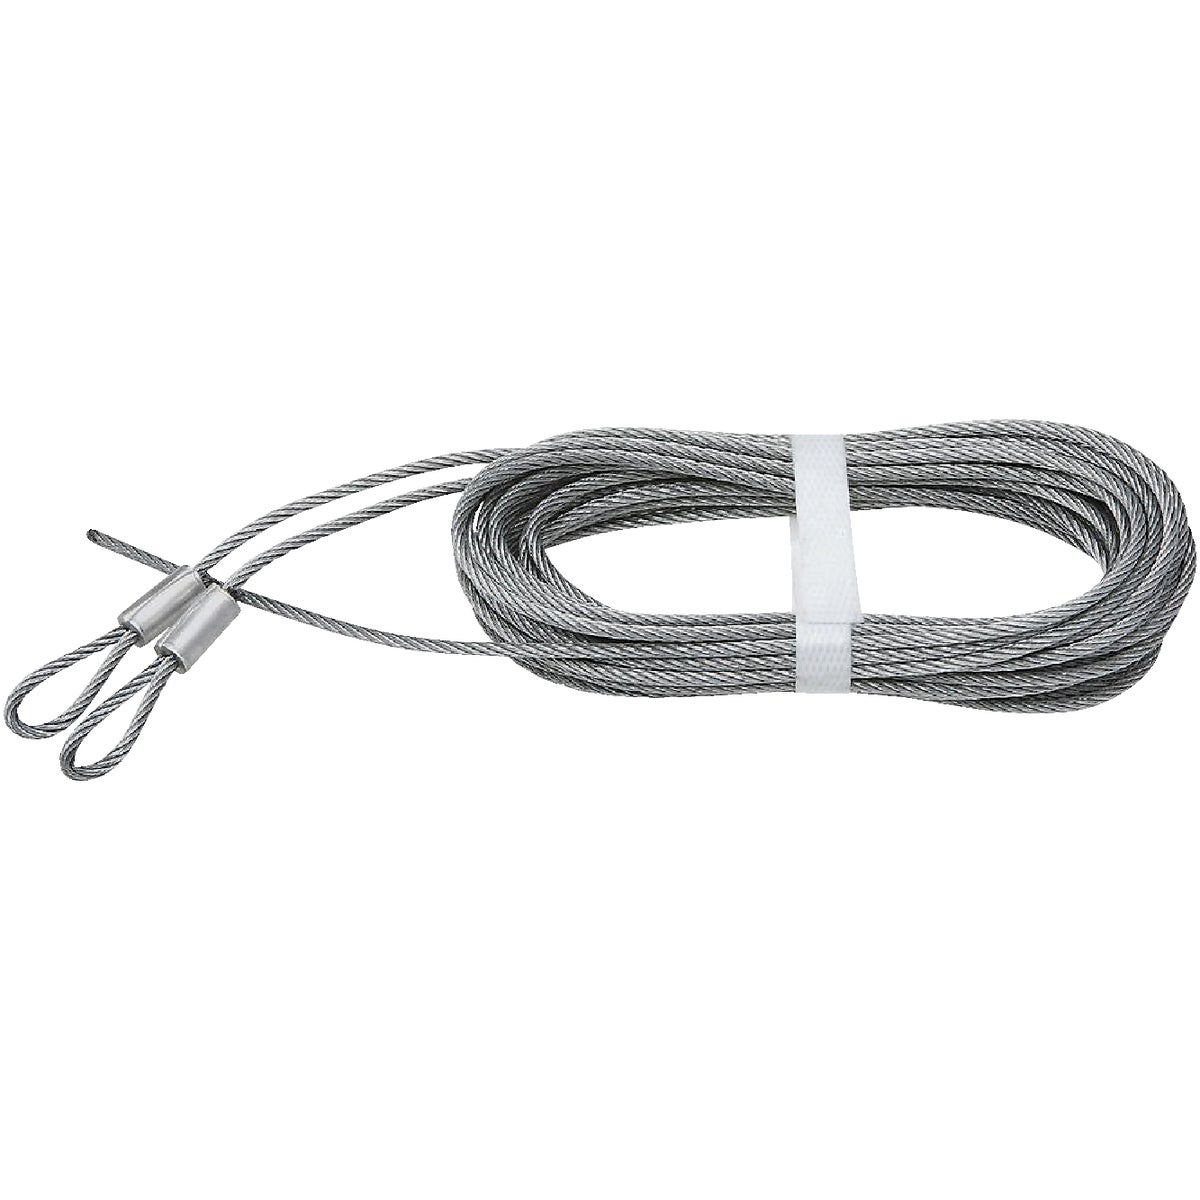 12' EXTENSION CABLE - N280313 by National Mfg Co